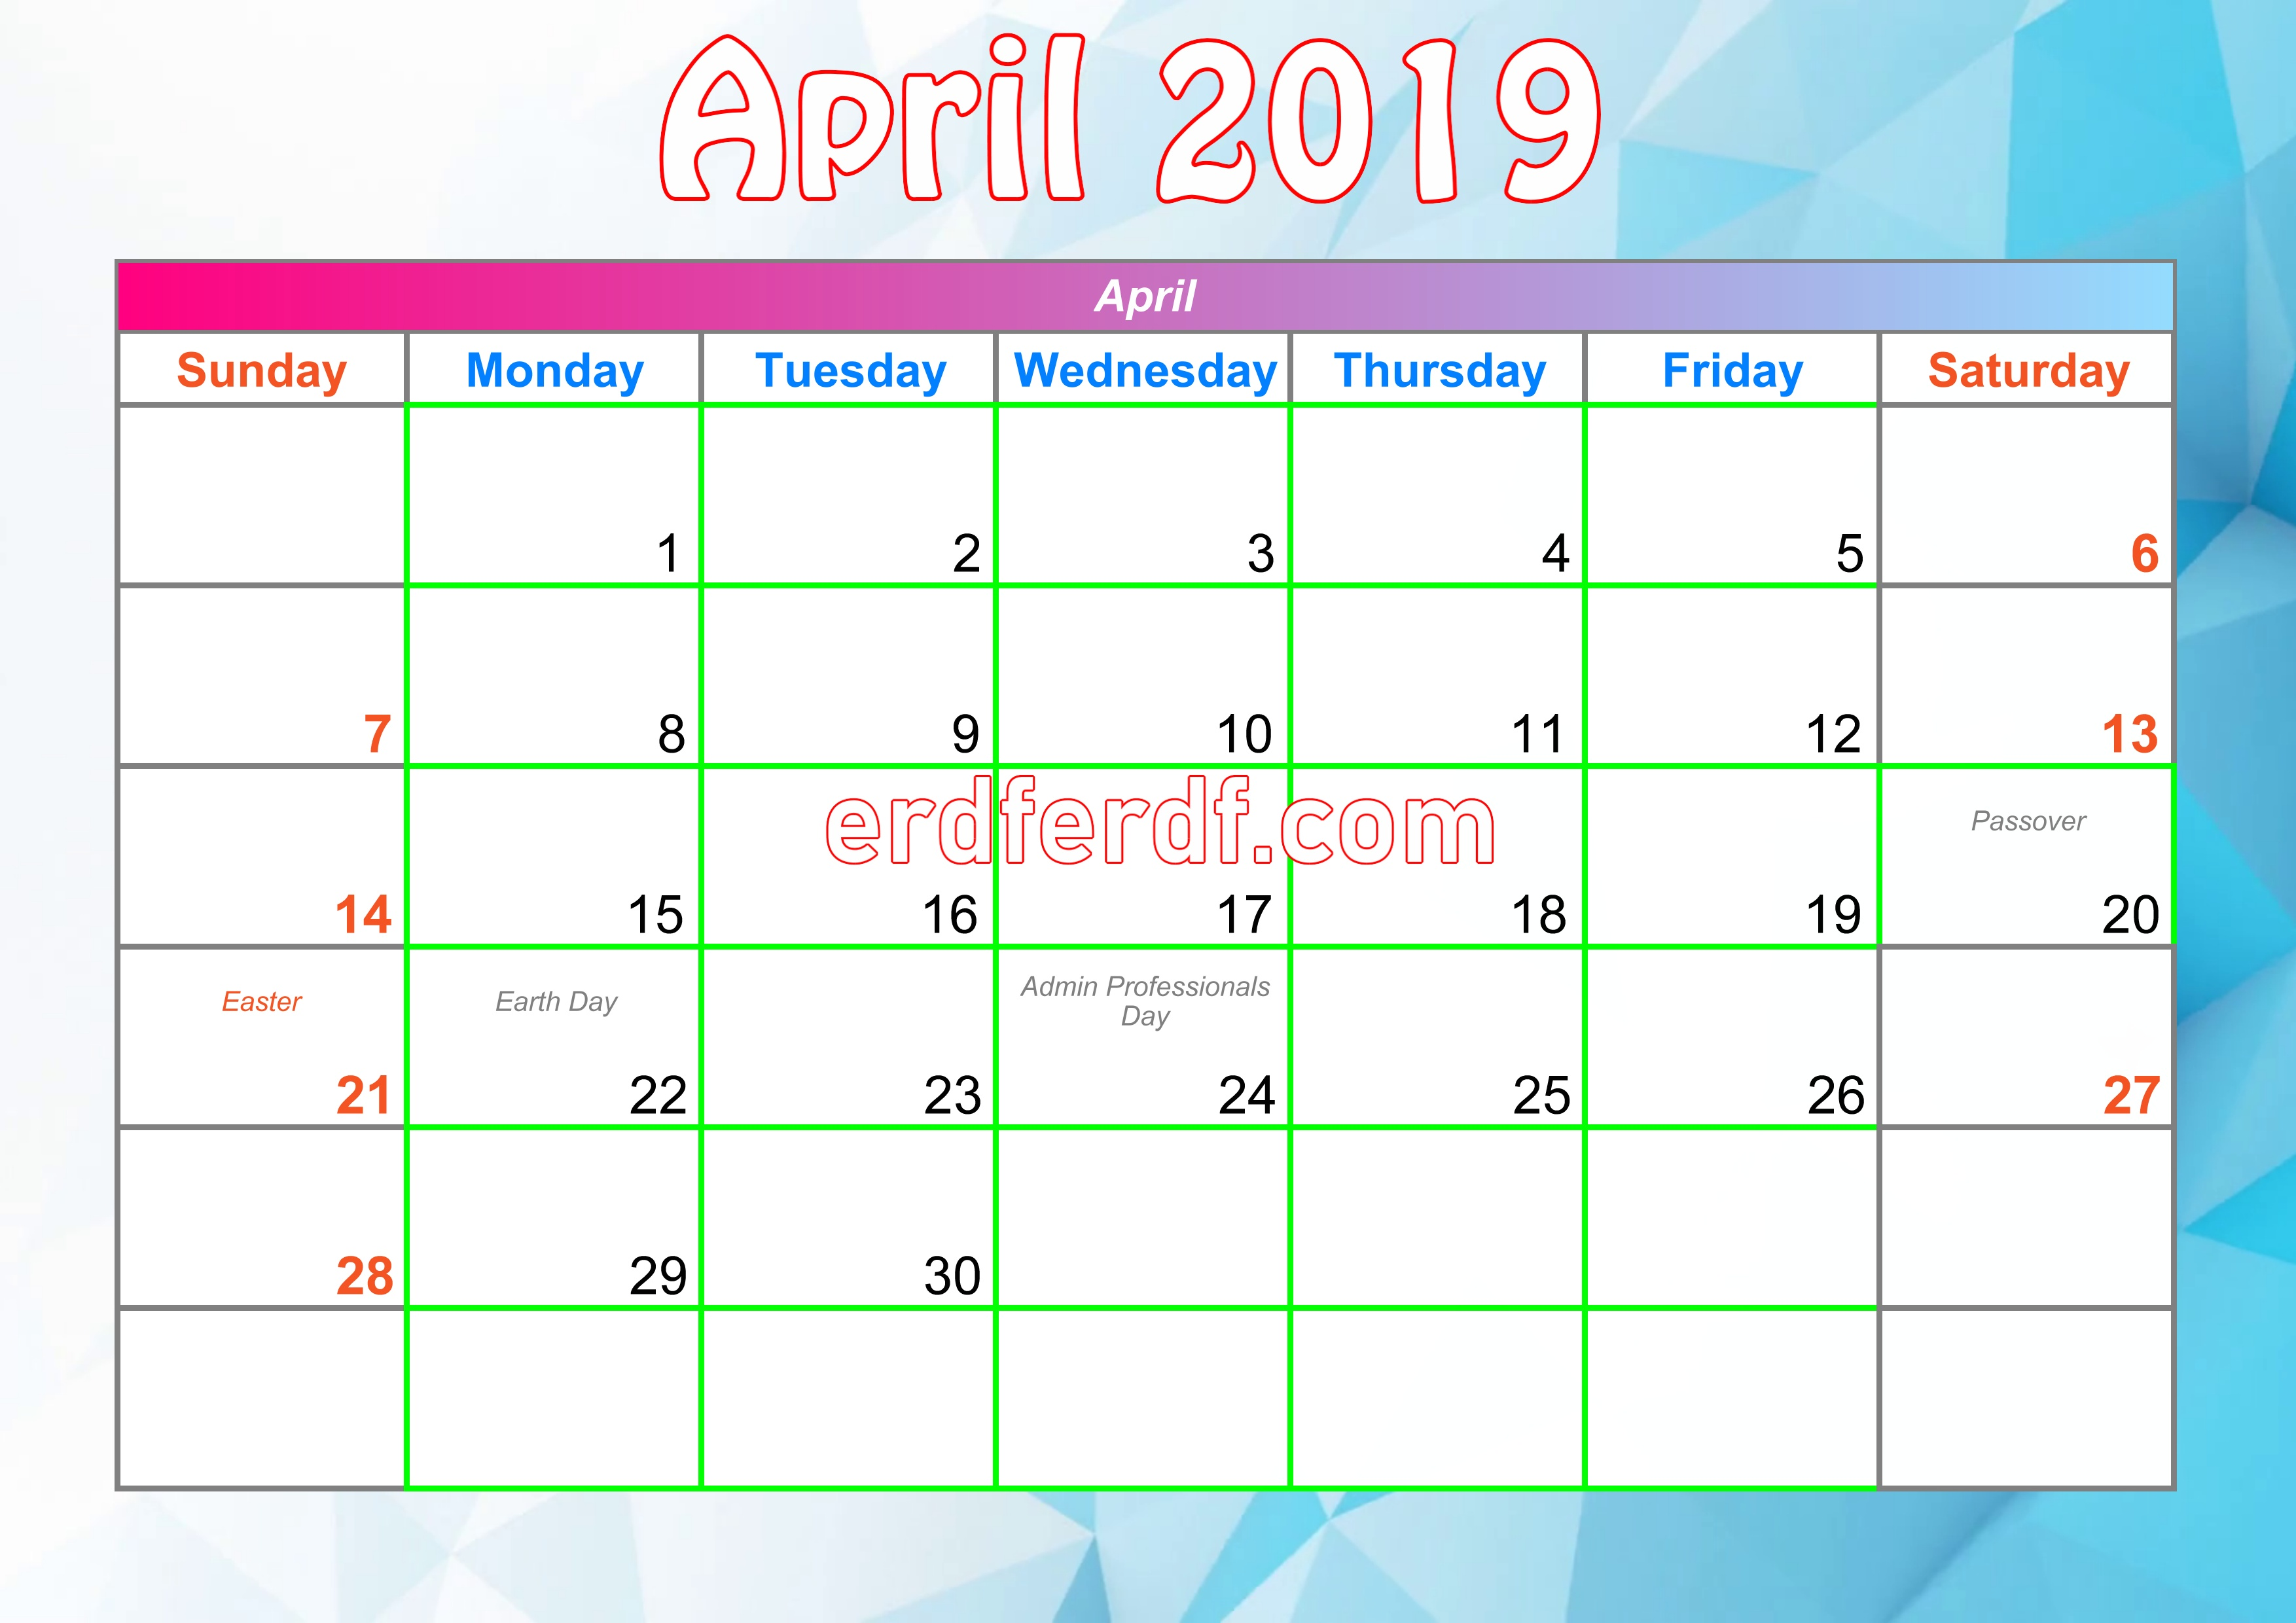 4 Arpil Printable Calendar For 2019 With Holidays